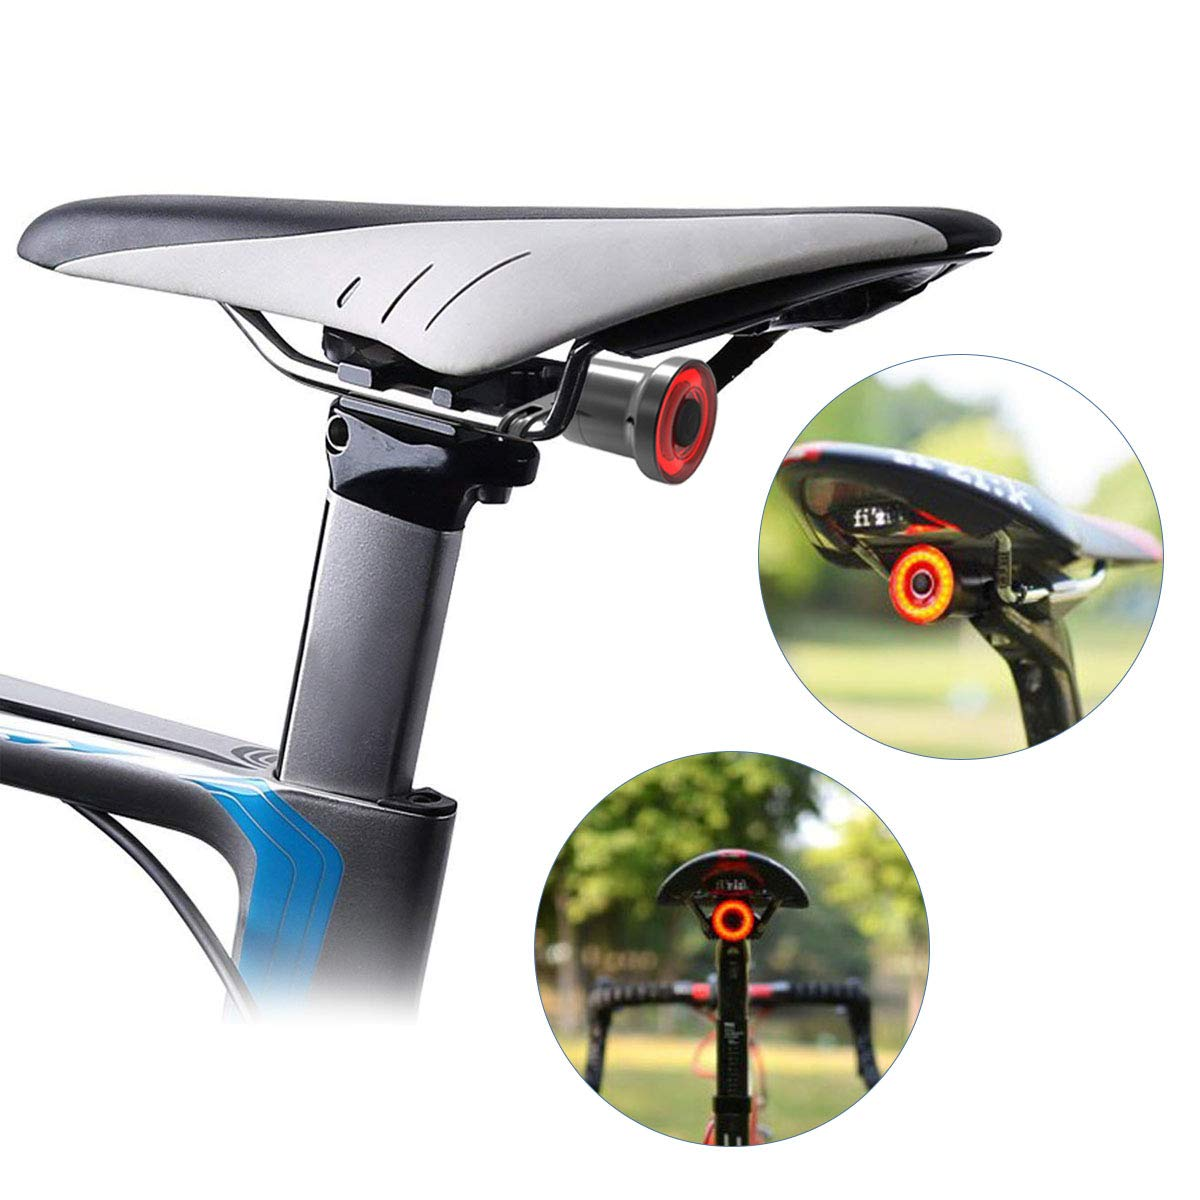 USB Rechargeable Bike MTB Bicycle Rear Tail Light Safety Lamp Taillight COB LED